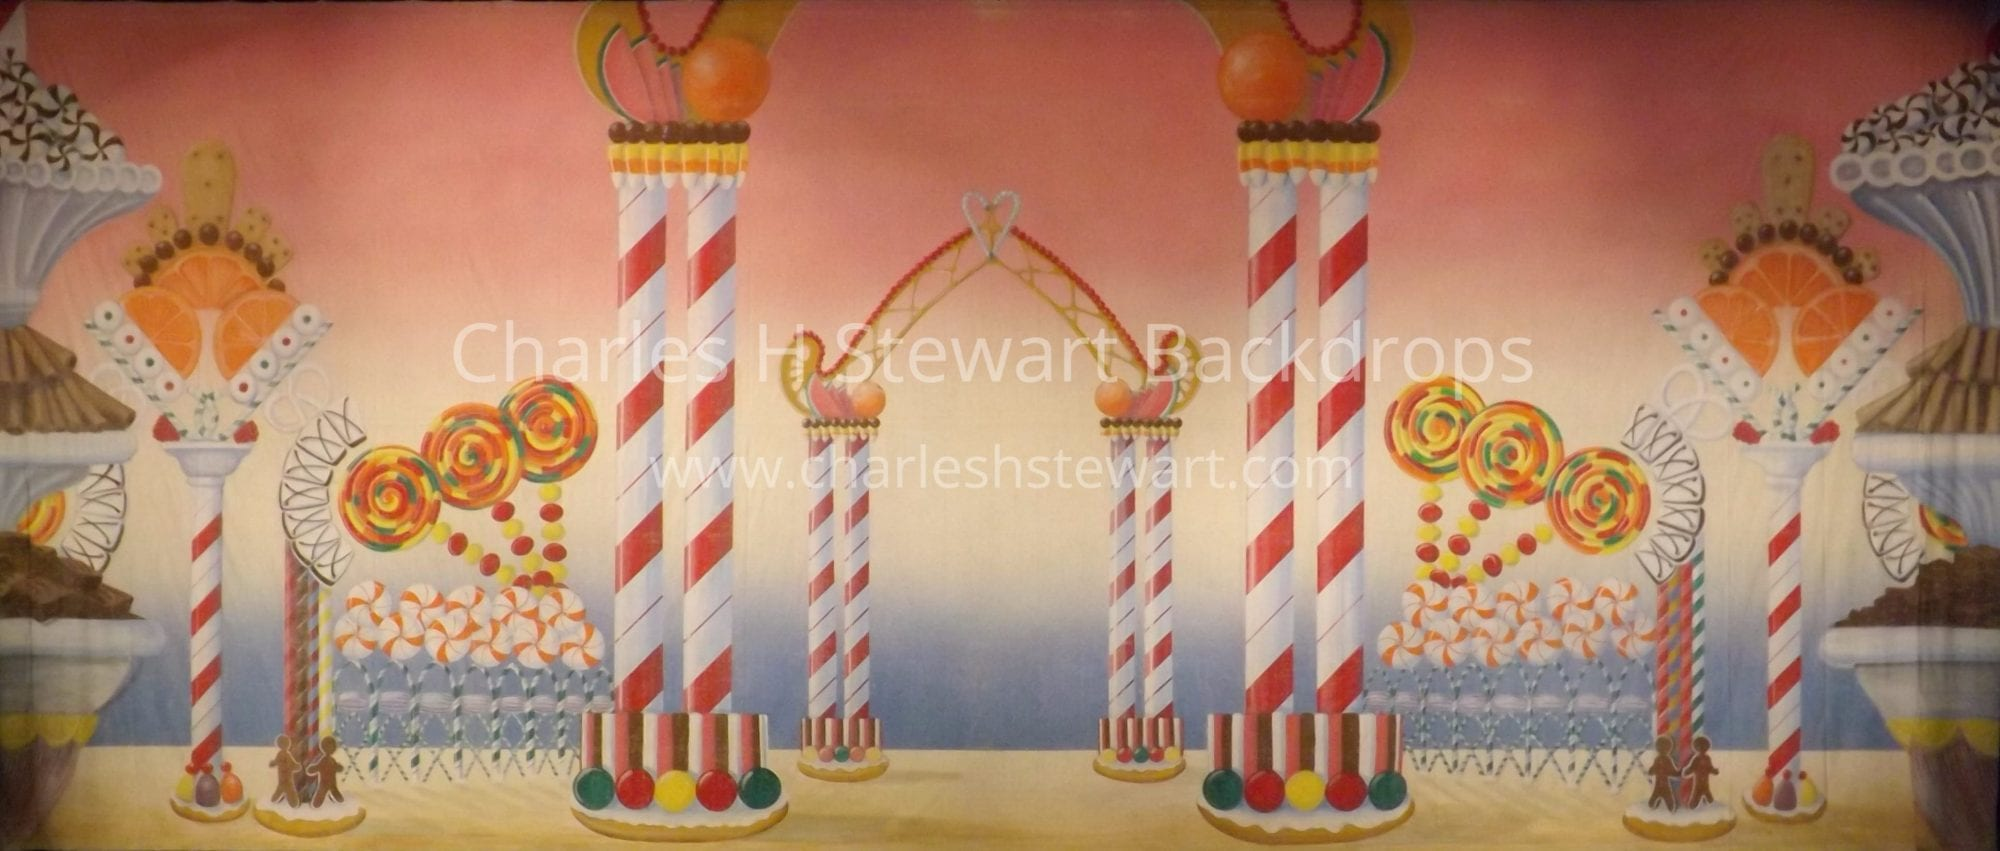 1950s Interior Design Land Of Sweets Backdrop Backdrops By Charles H Stewart